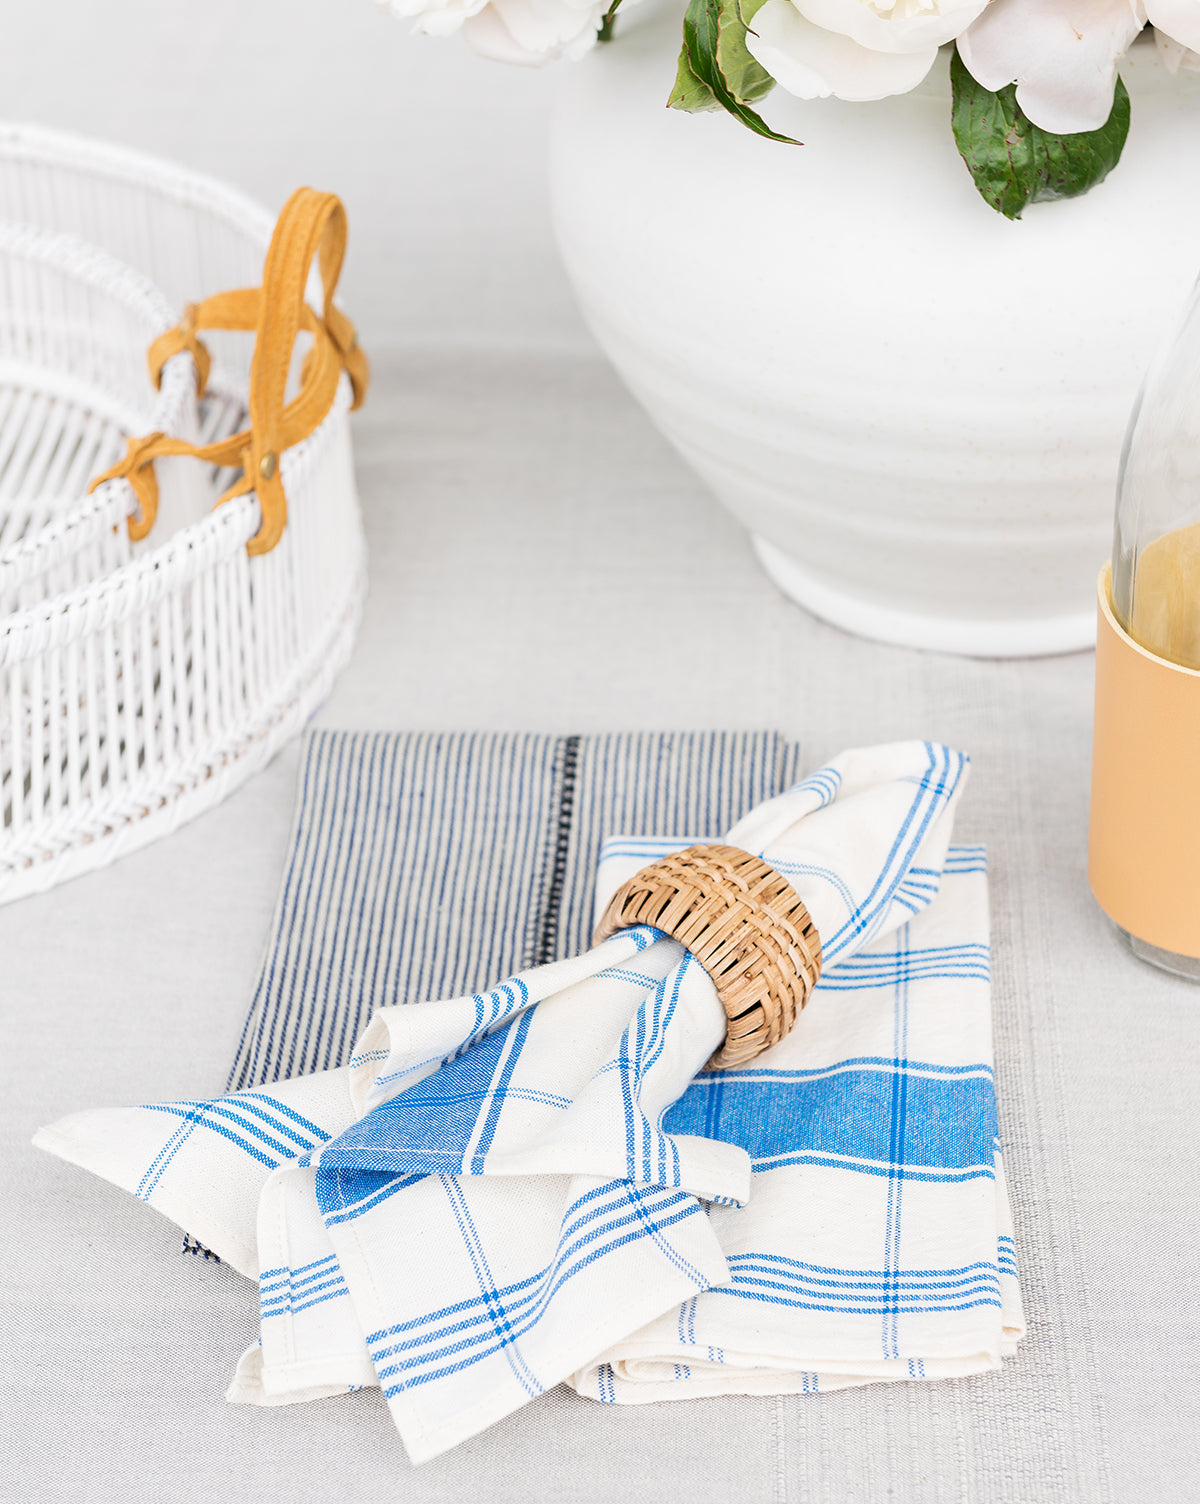 Cobalt Plaid Napkins (Set of 4)